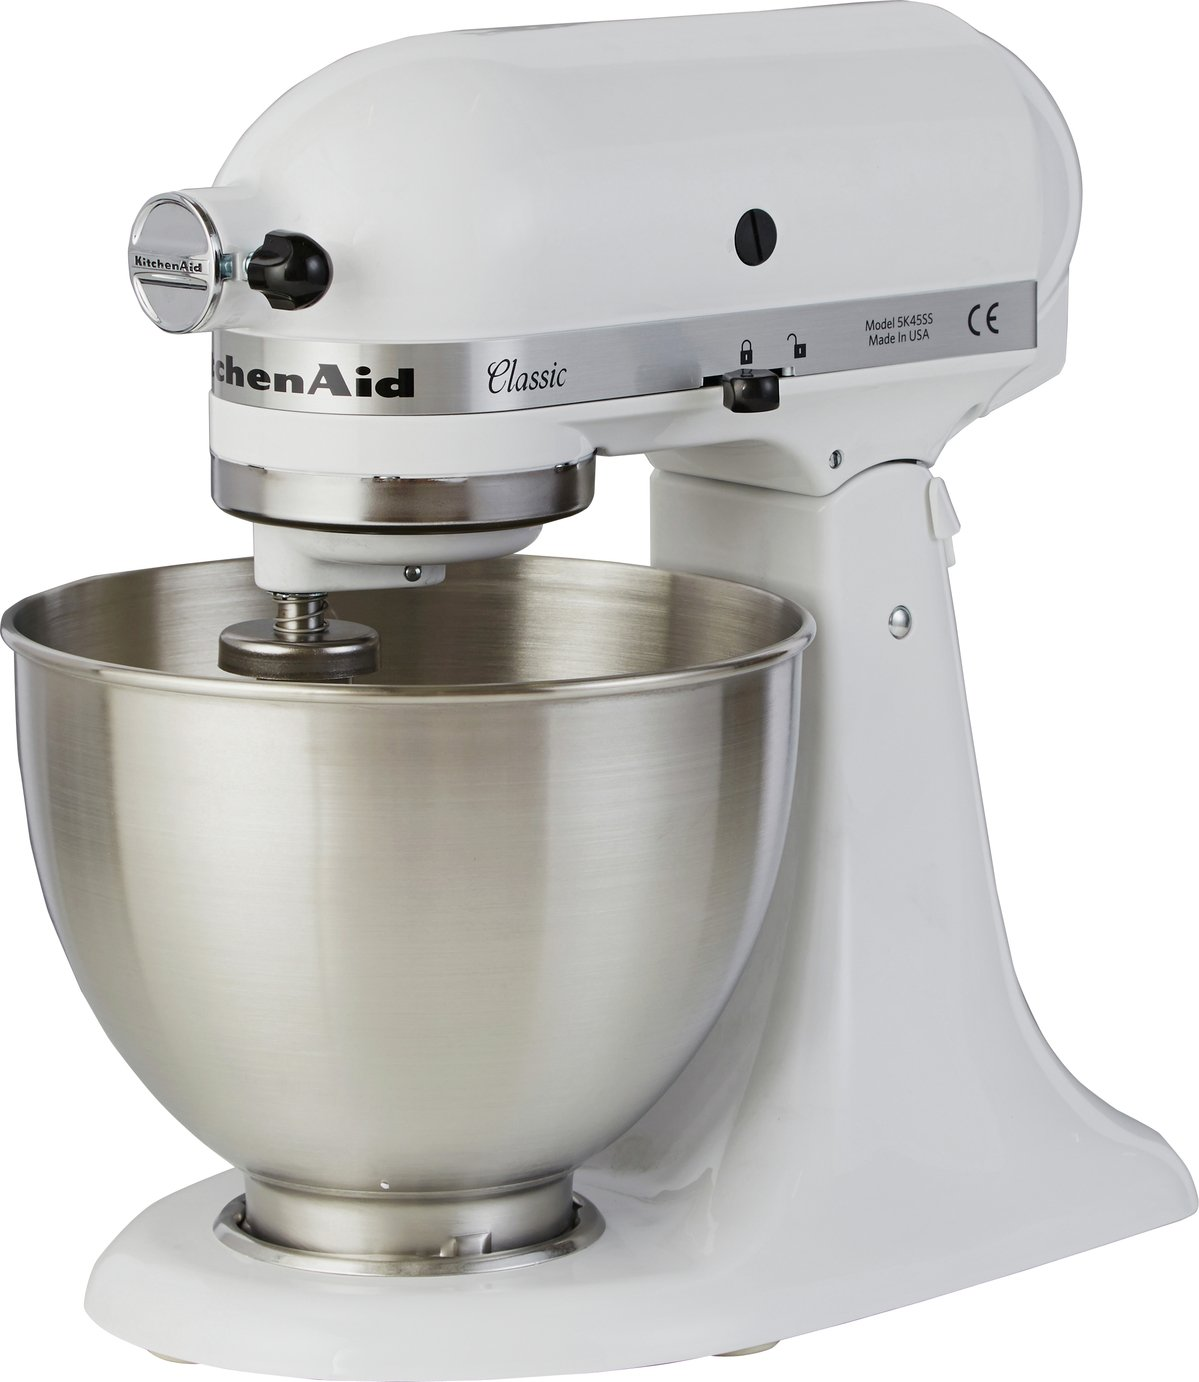 White Kitchenaid buy kitchenaid 5k45ssbwh classic stand mixer - white at argos.co